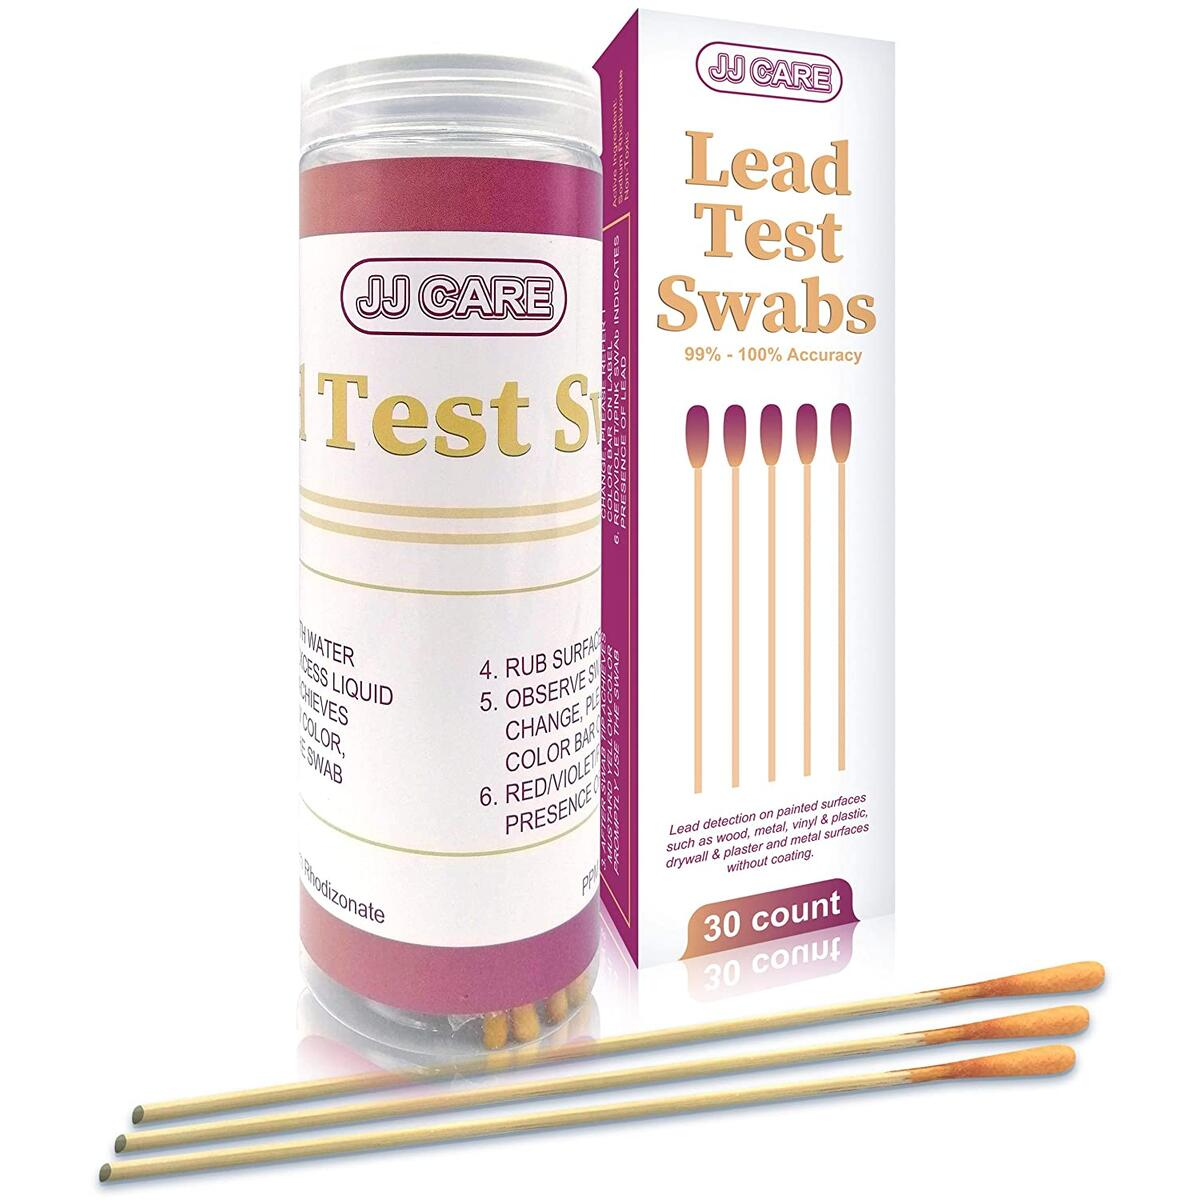 [Pack of 30] Lead Test Kit for All Painted Surfaces, Lead Test Swabs, Lead Testing Kit, Accurate Results in Seconds! Dip in Water Lead Paint Test Kit for Wood, Metal, Vinyl, Plastic, Plaster & Drywall